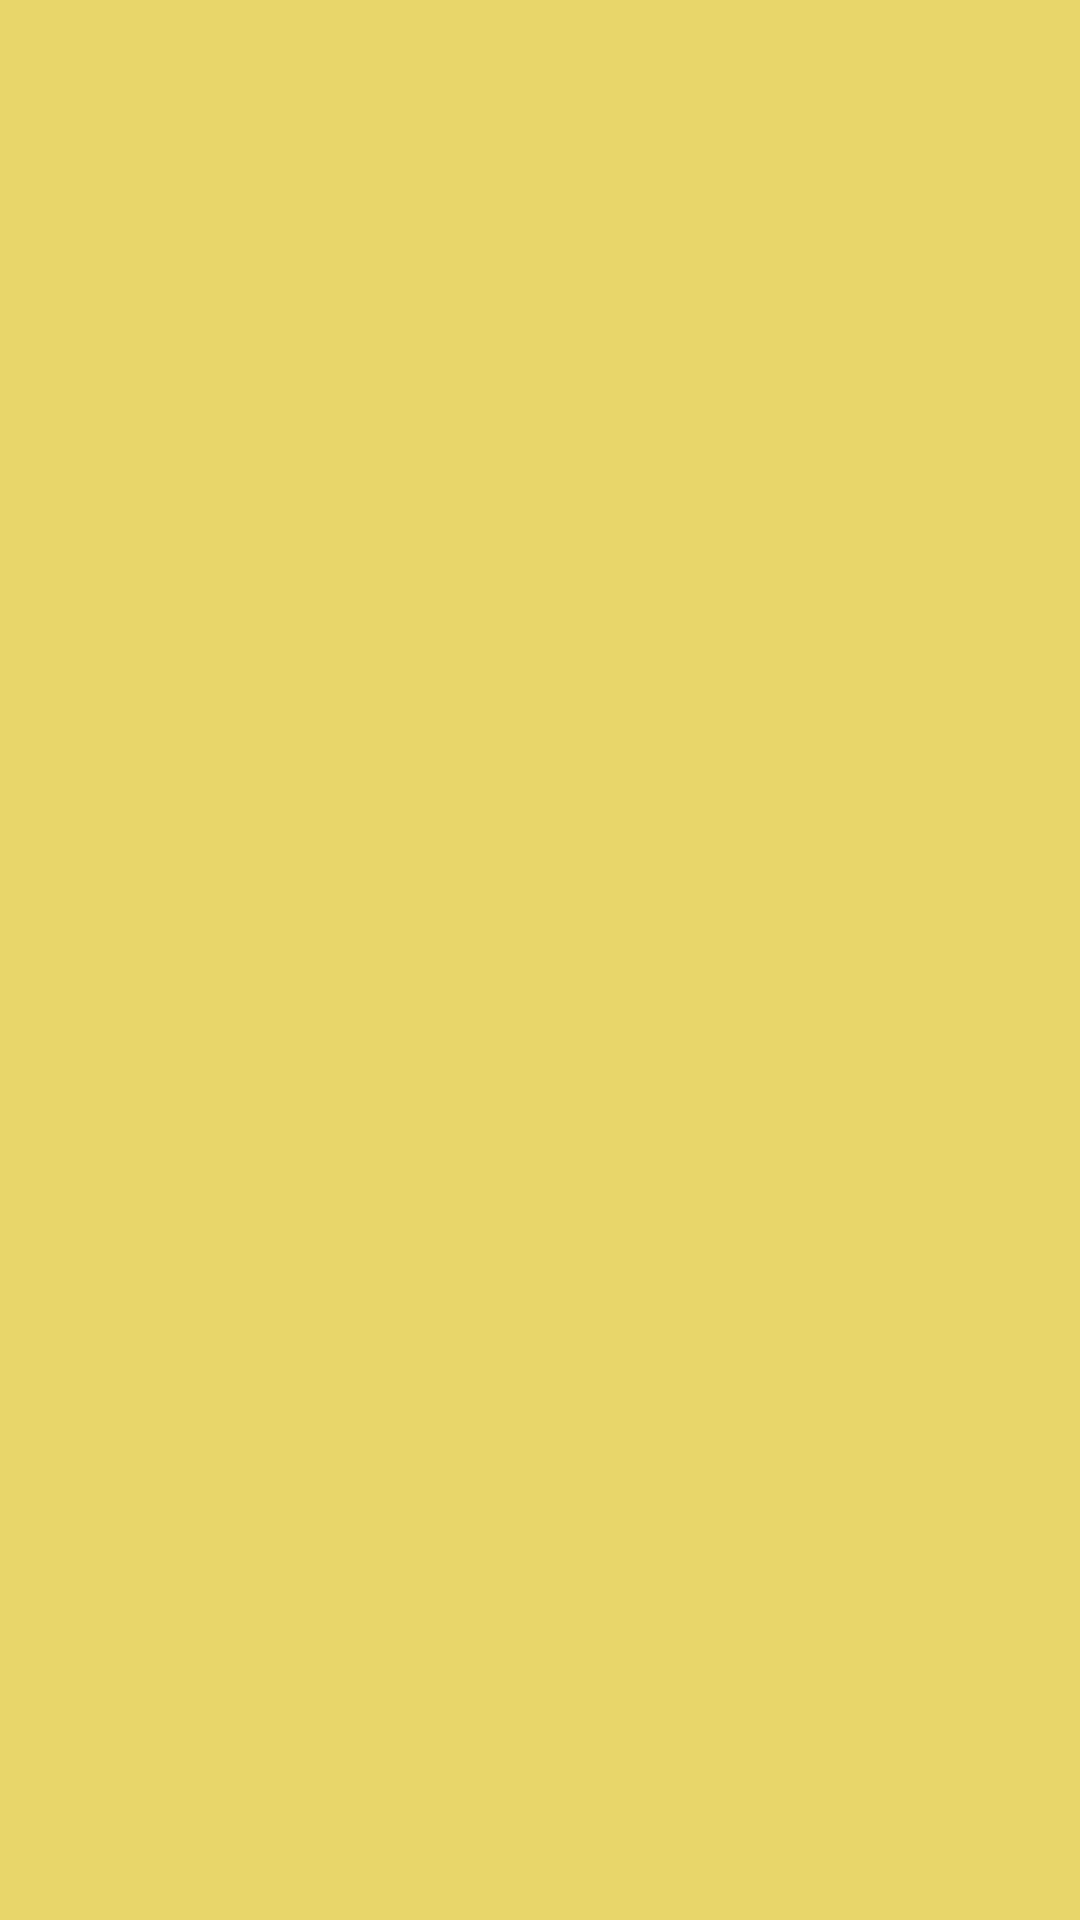 1080x1920 Arylide Yellow Solid Color Background